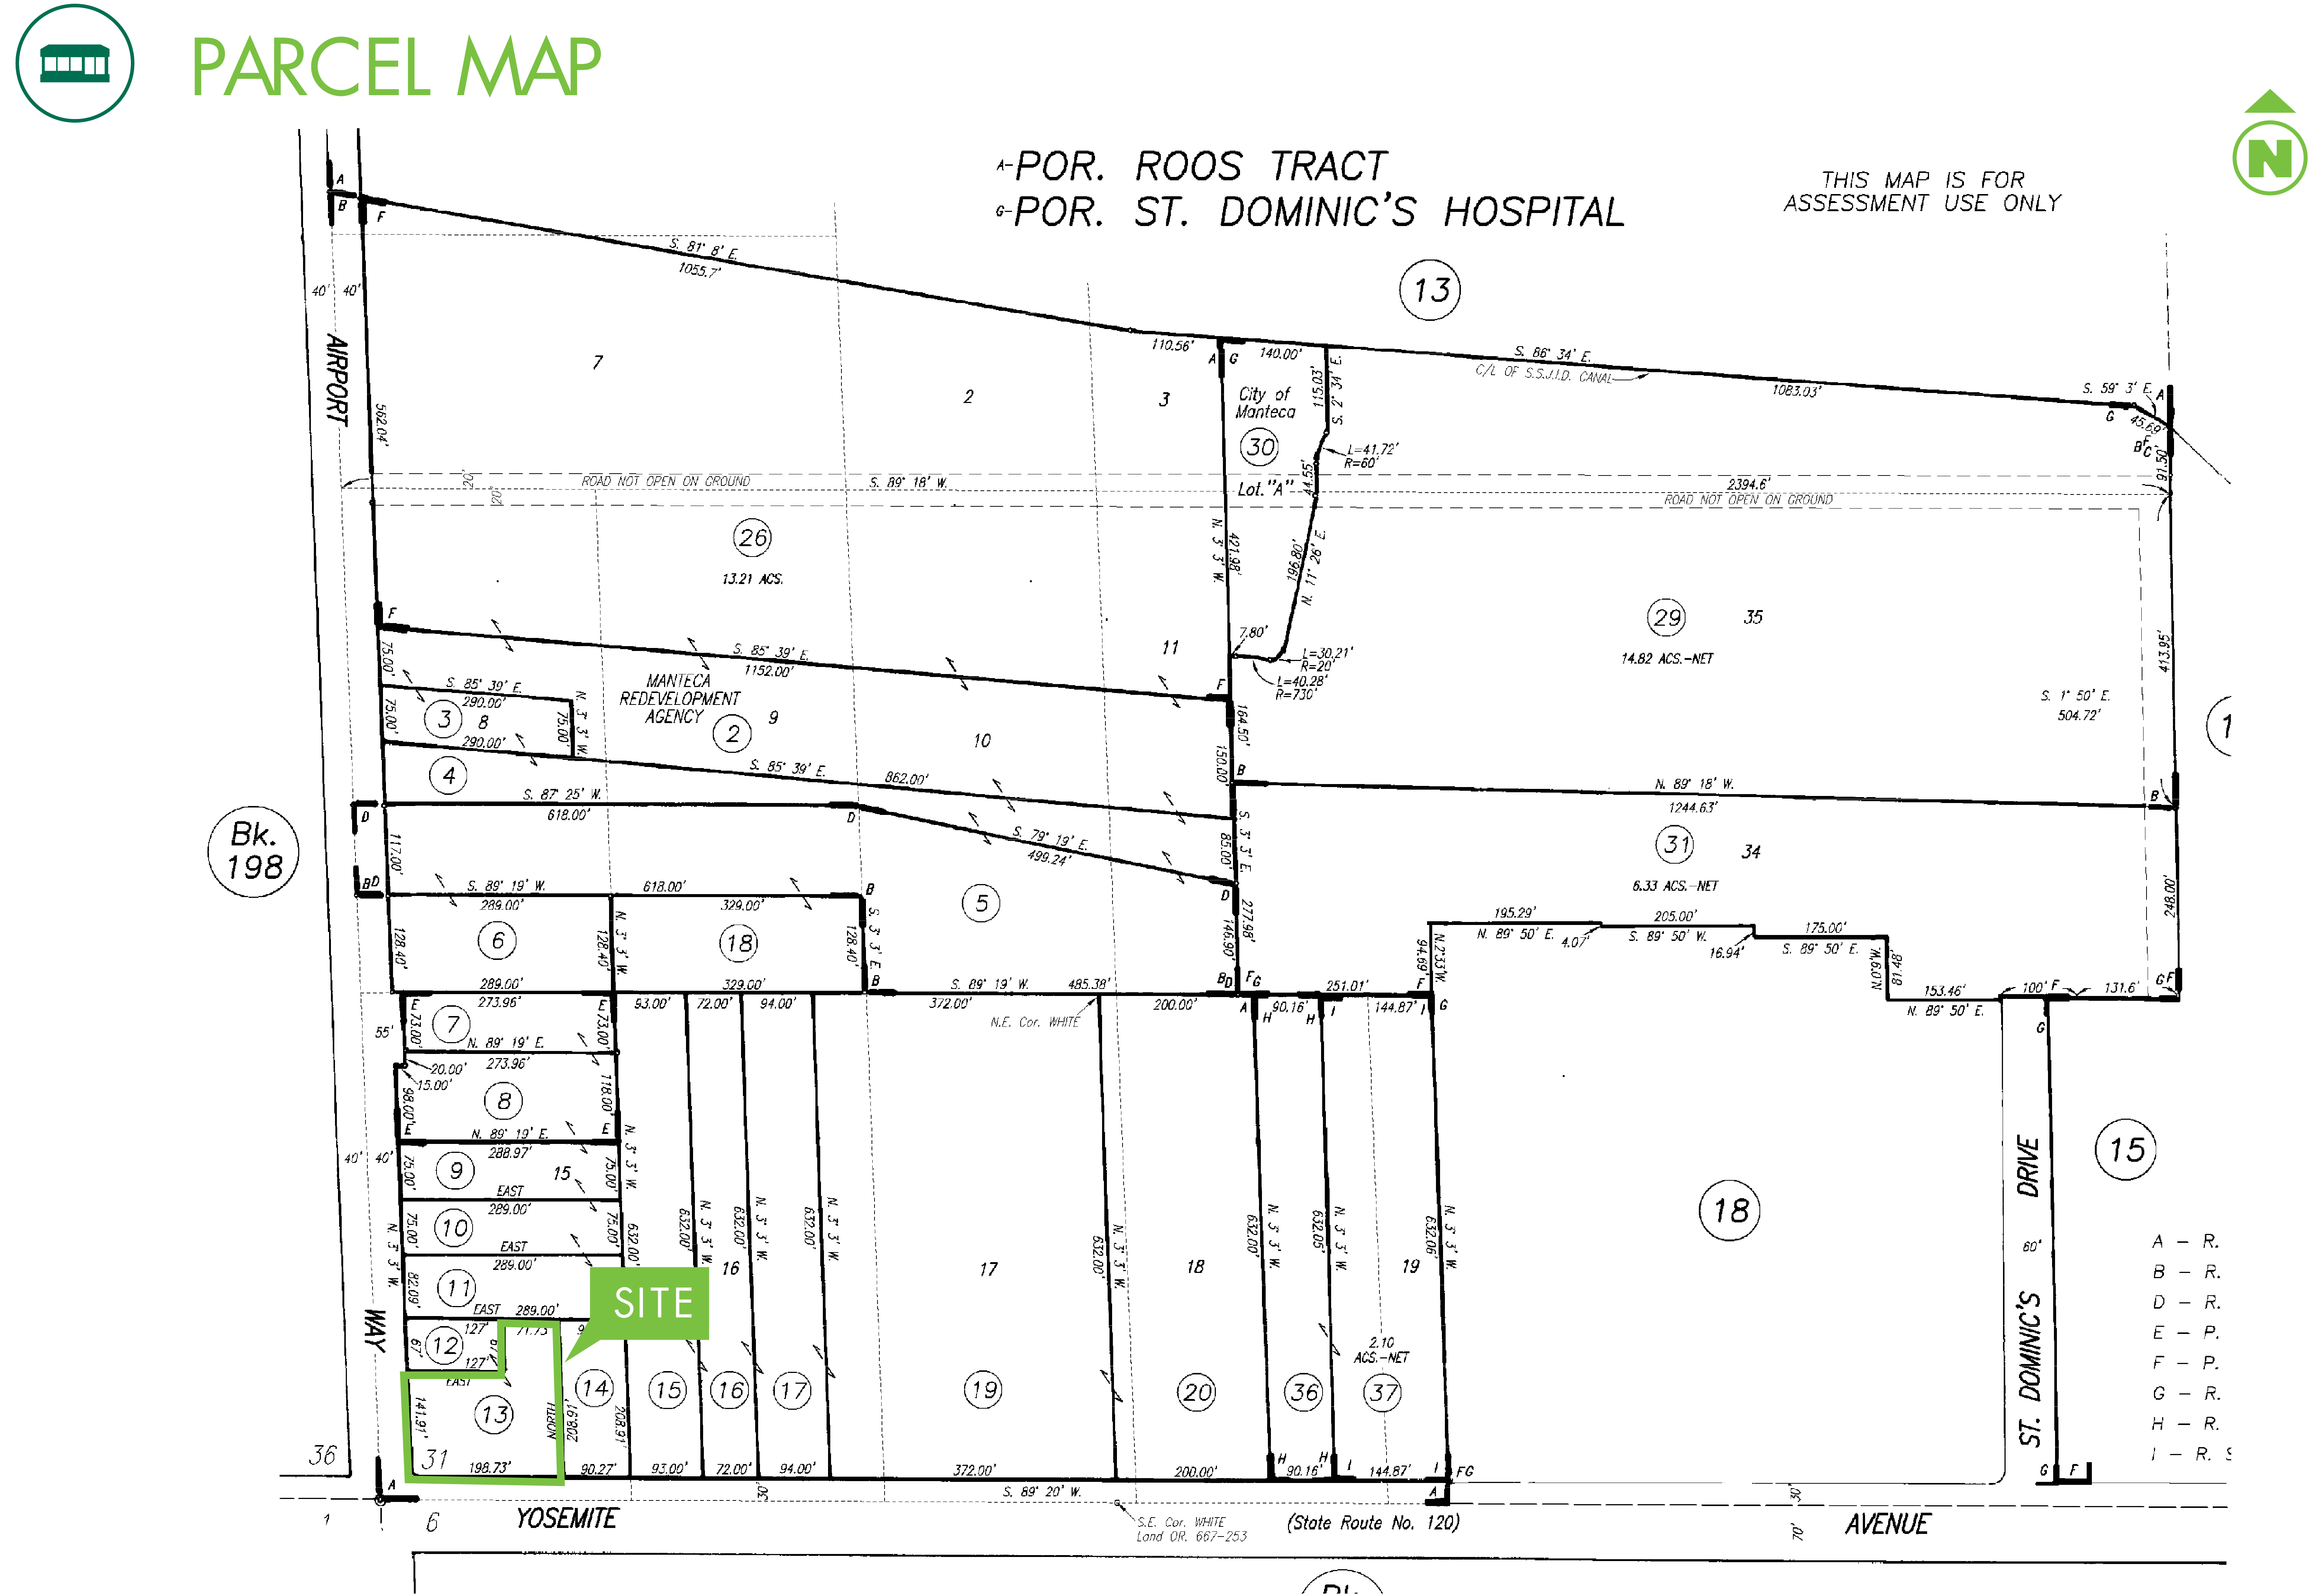 Commercial Land - 2077 Yosemite Ave: site plan